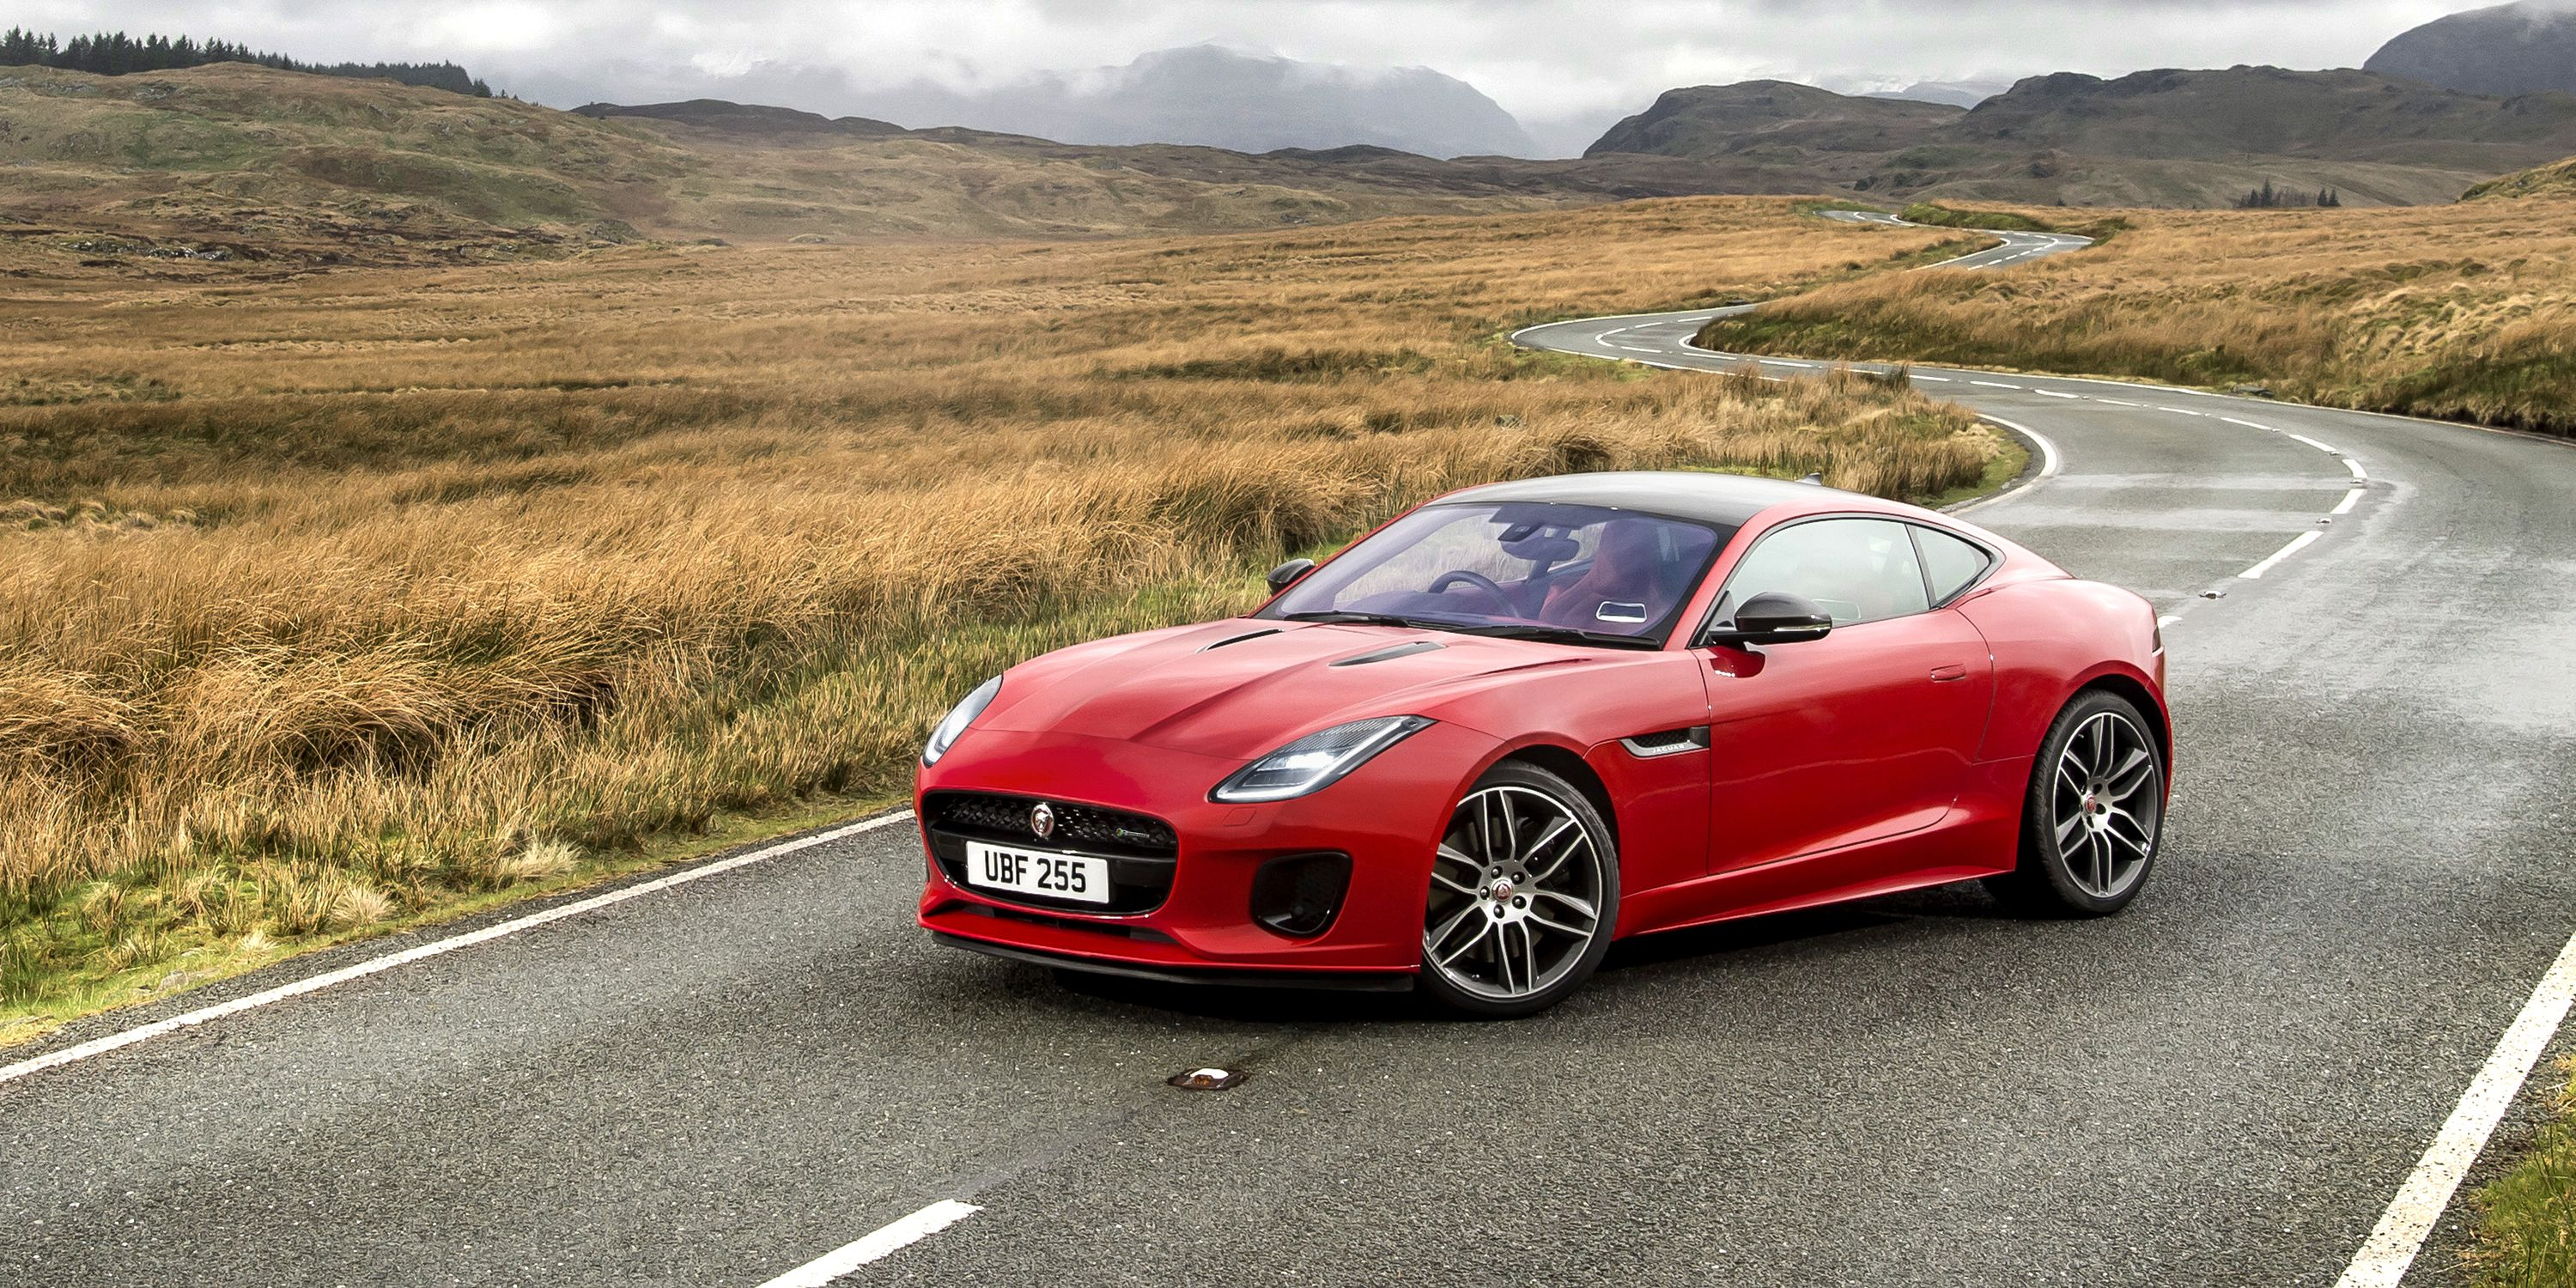 14 Best 4 Cylinder Cars - Most Powerful Four Cylinder You Can Buy Now